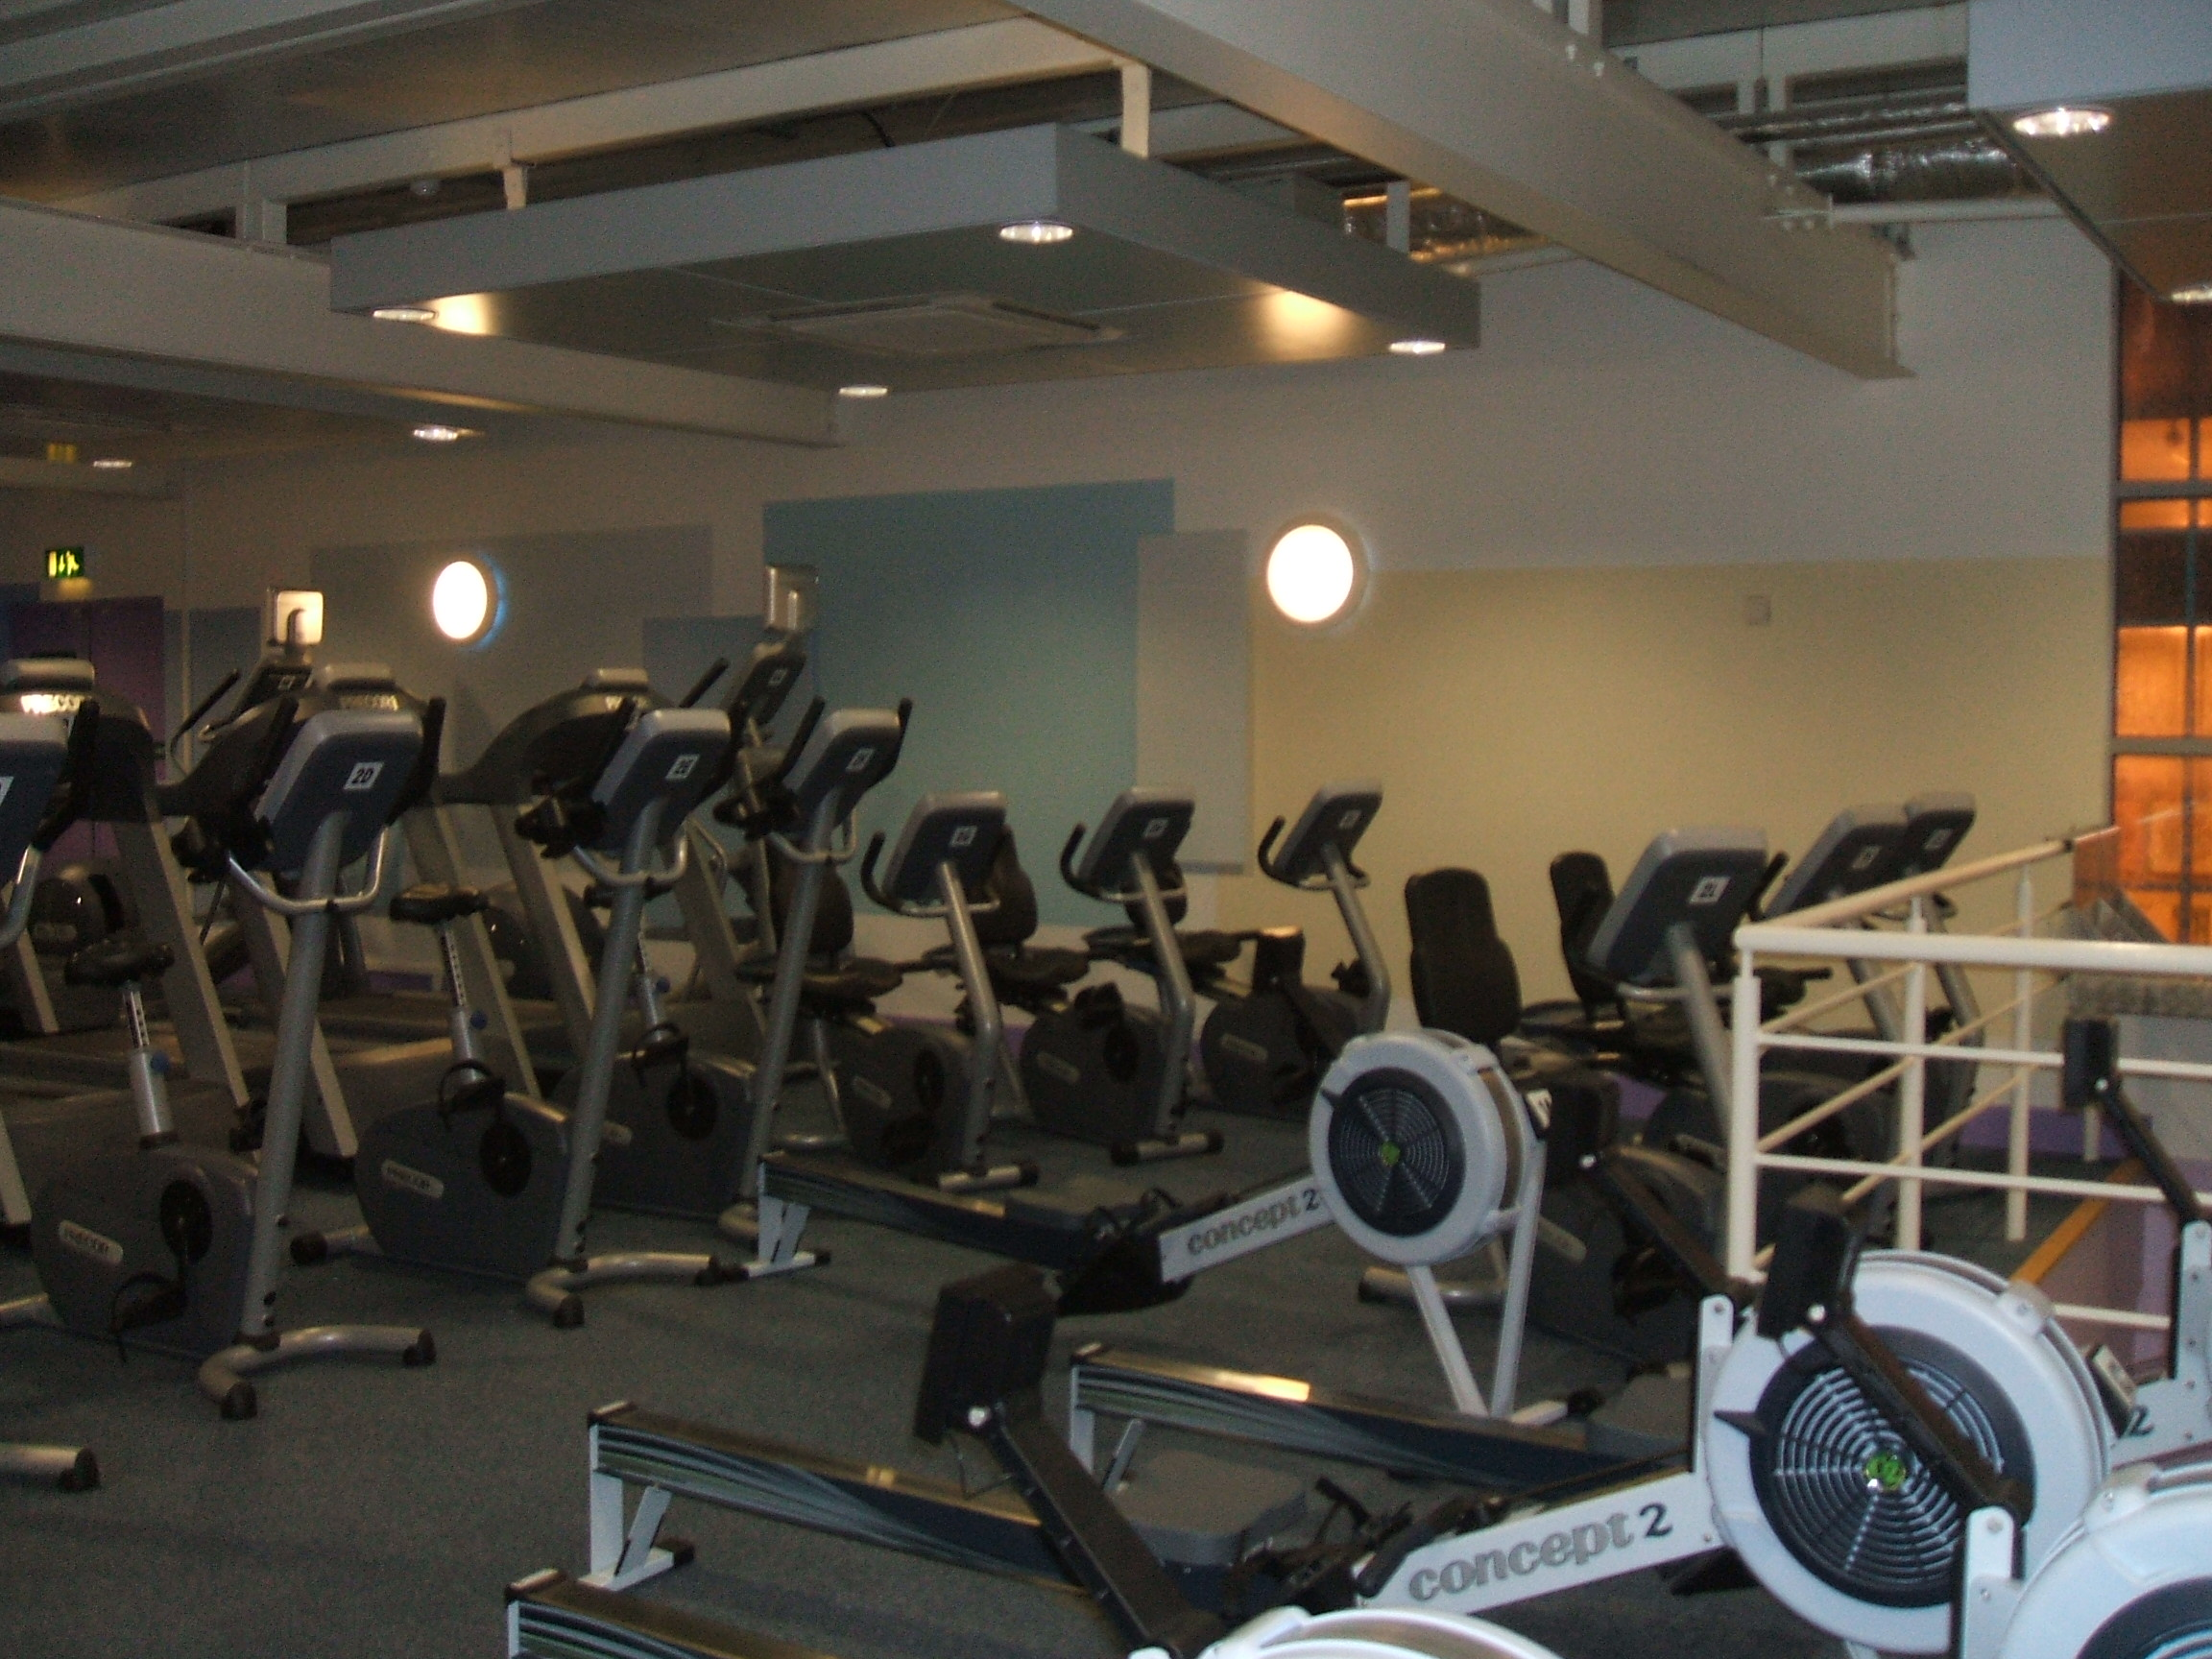 Whether You Want To Use The Gym Regularly Get In Shape Improve Your Fitness Levels Or Just De Stress Our 1 And 3month Memberships Are Perfect